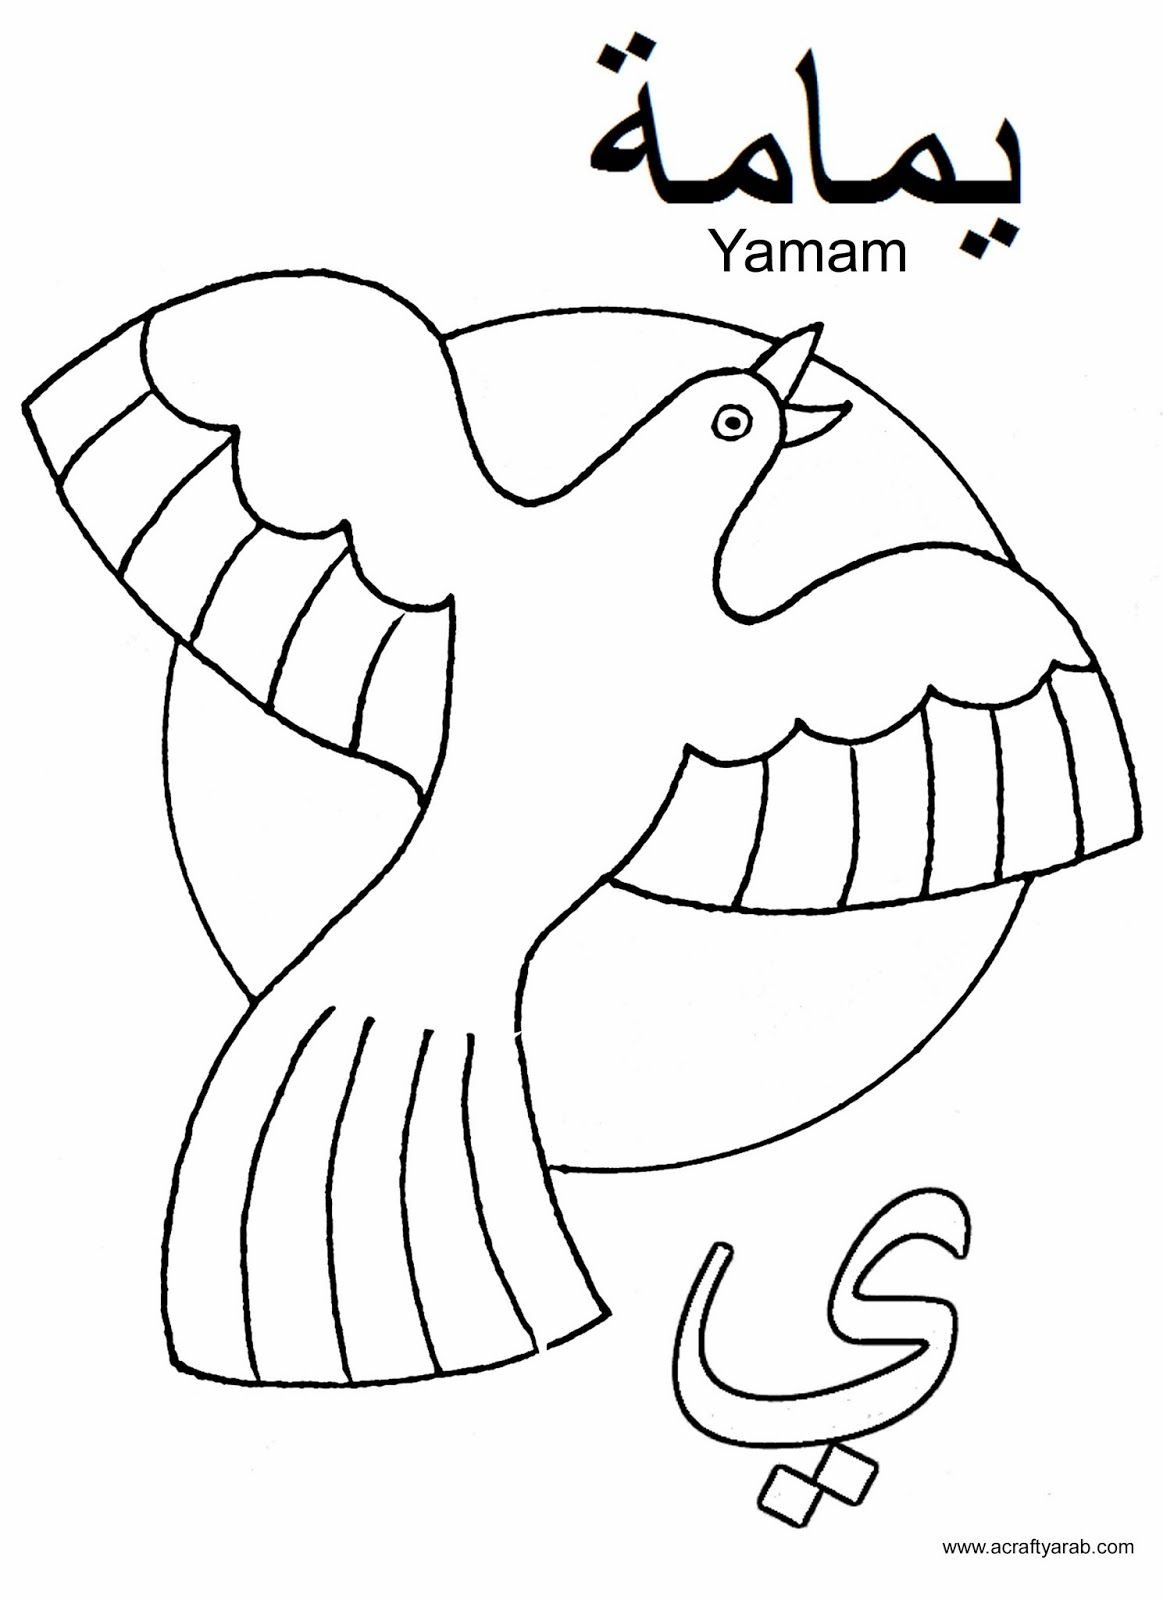 Arabic Alphabet Coloring Pages At Getdrawings